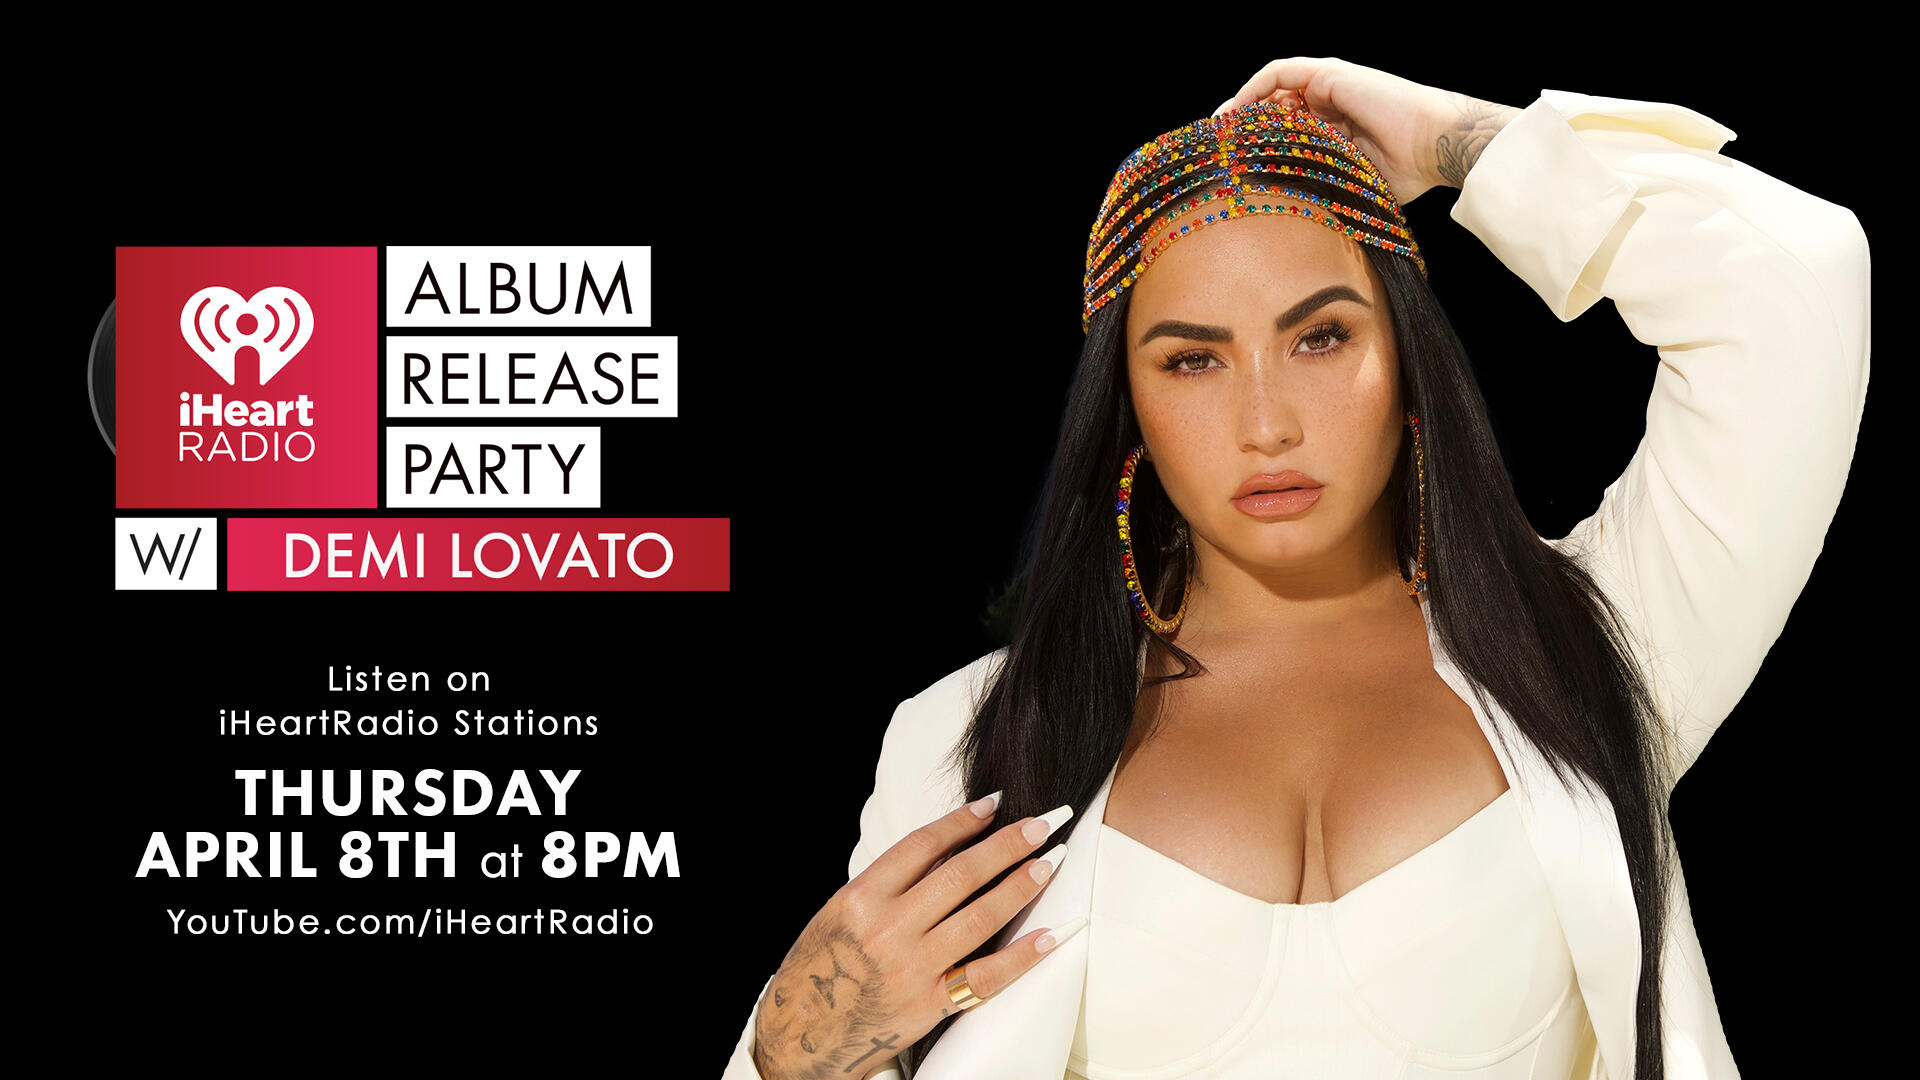 Demi Lovato's iHeartRadio Album Release Party: How To Watch